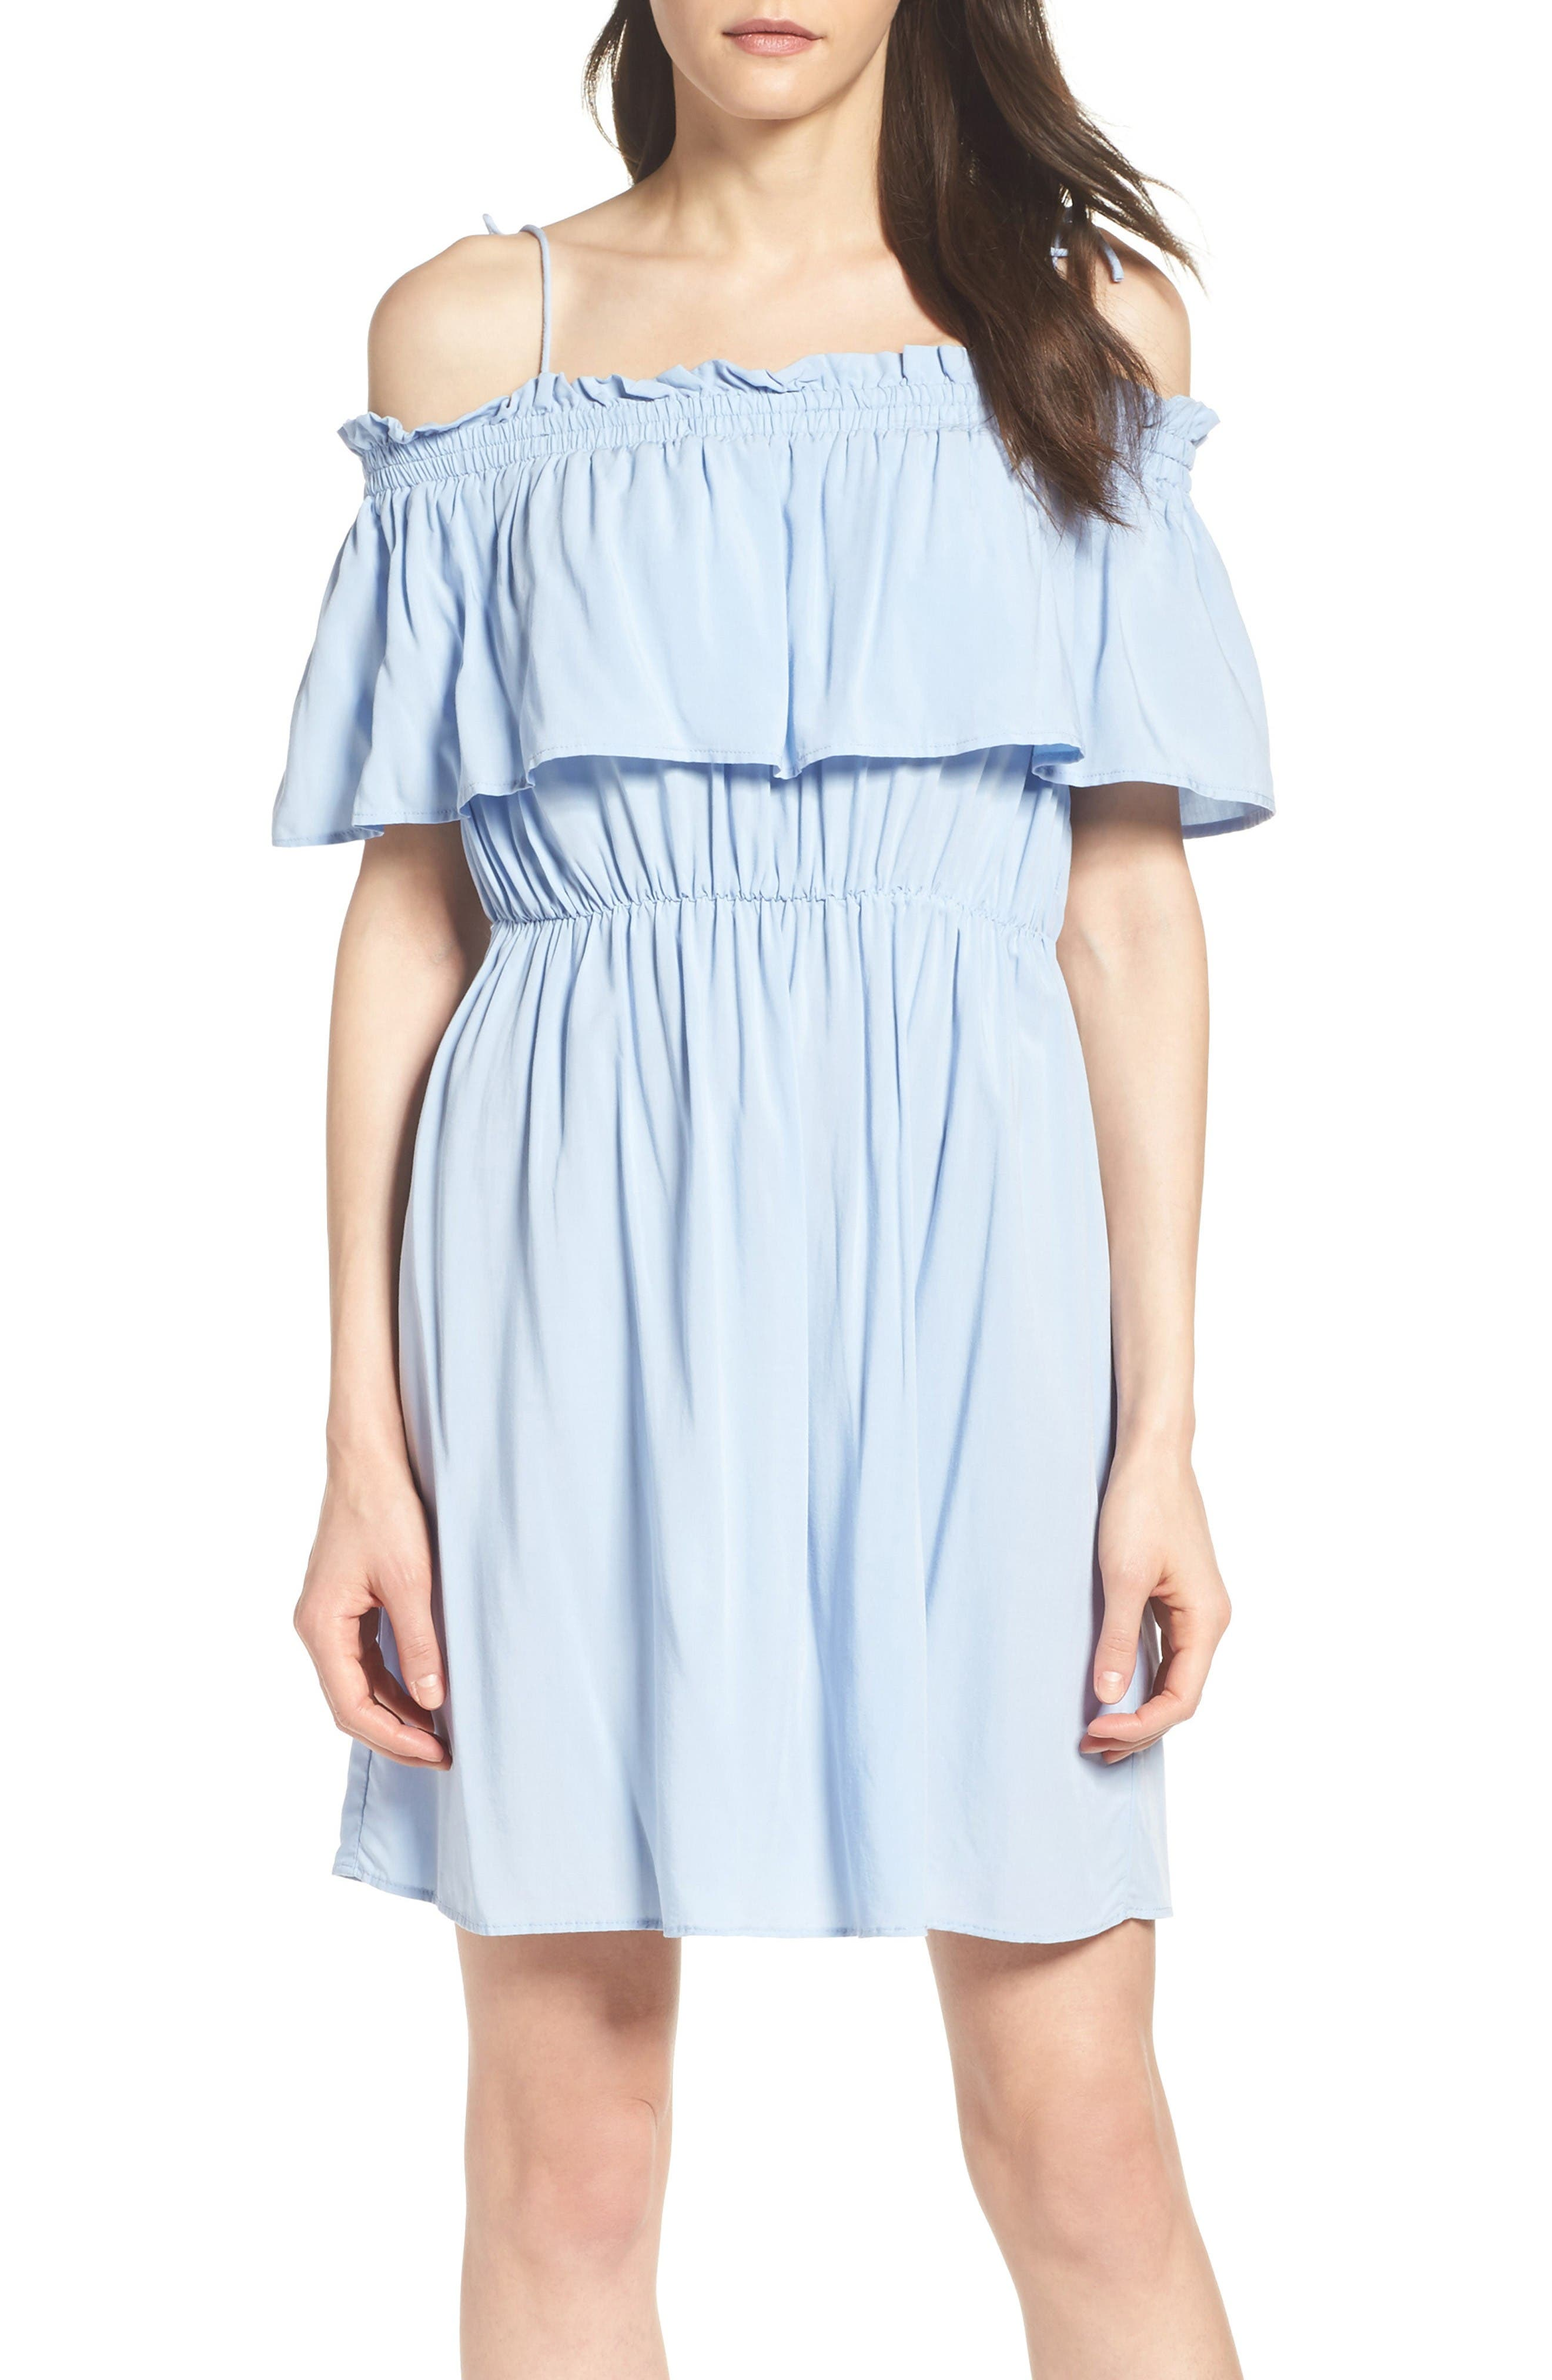 Chelsea Ruffle Bodice Off the Shoulder Dress,                             Main thumbnail 1, color,                             Sky Blue